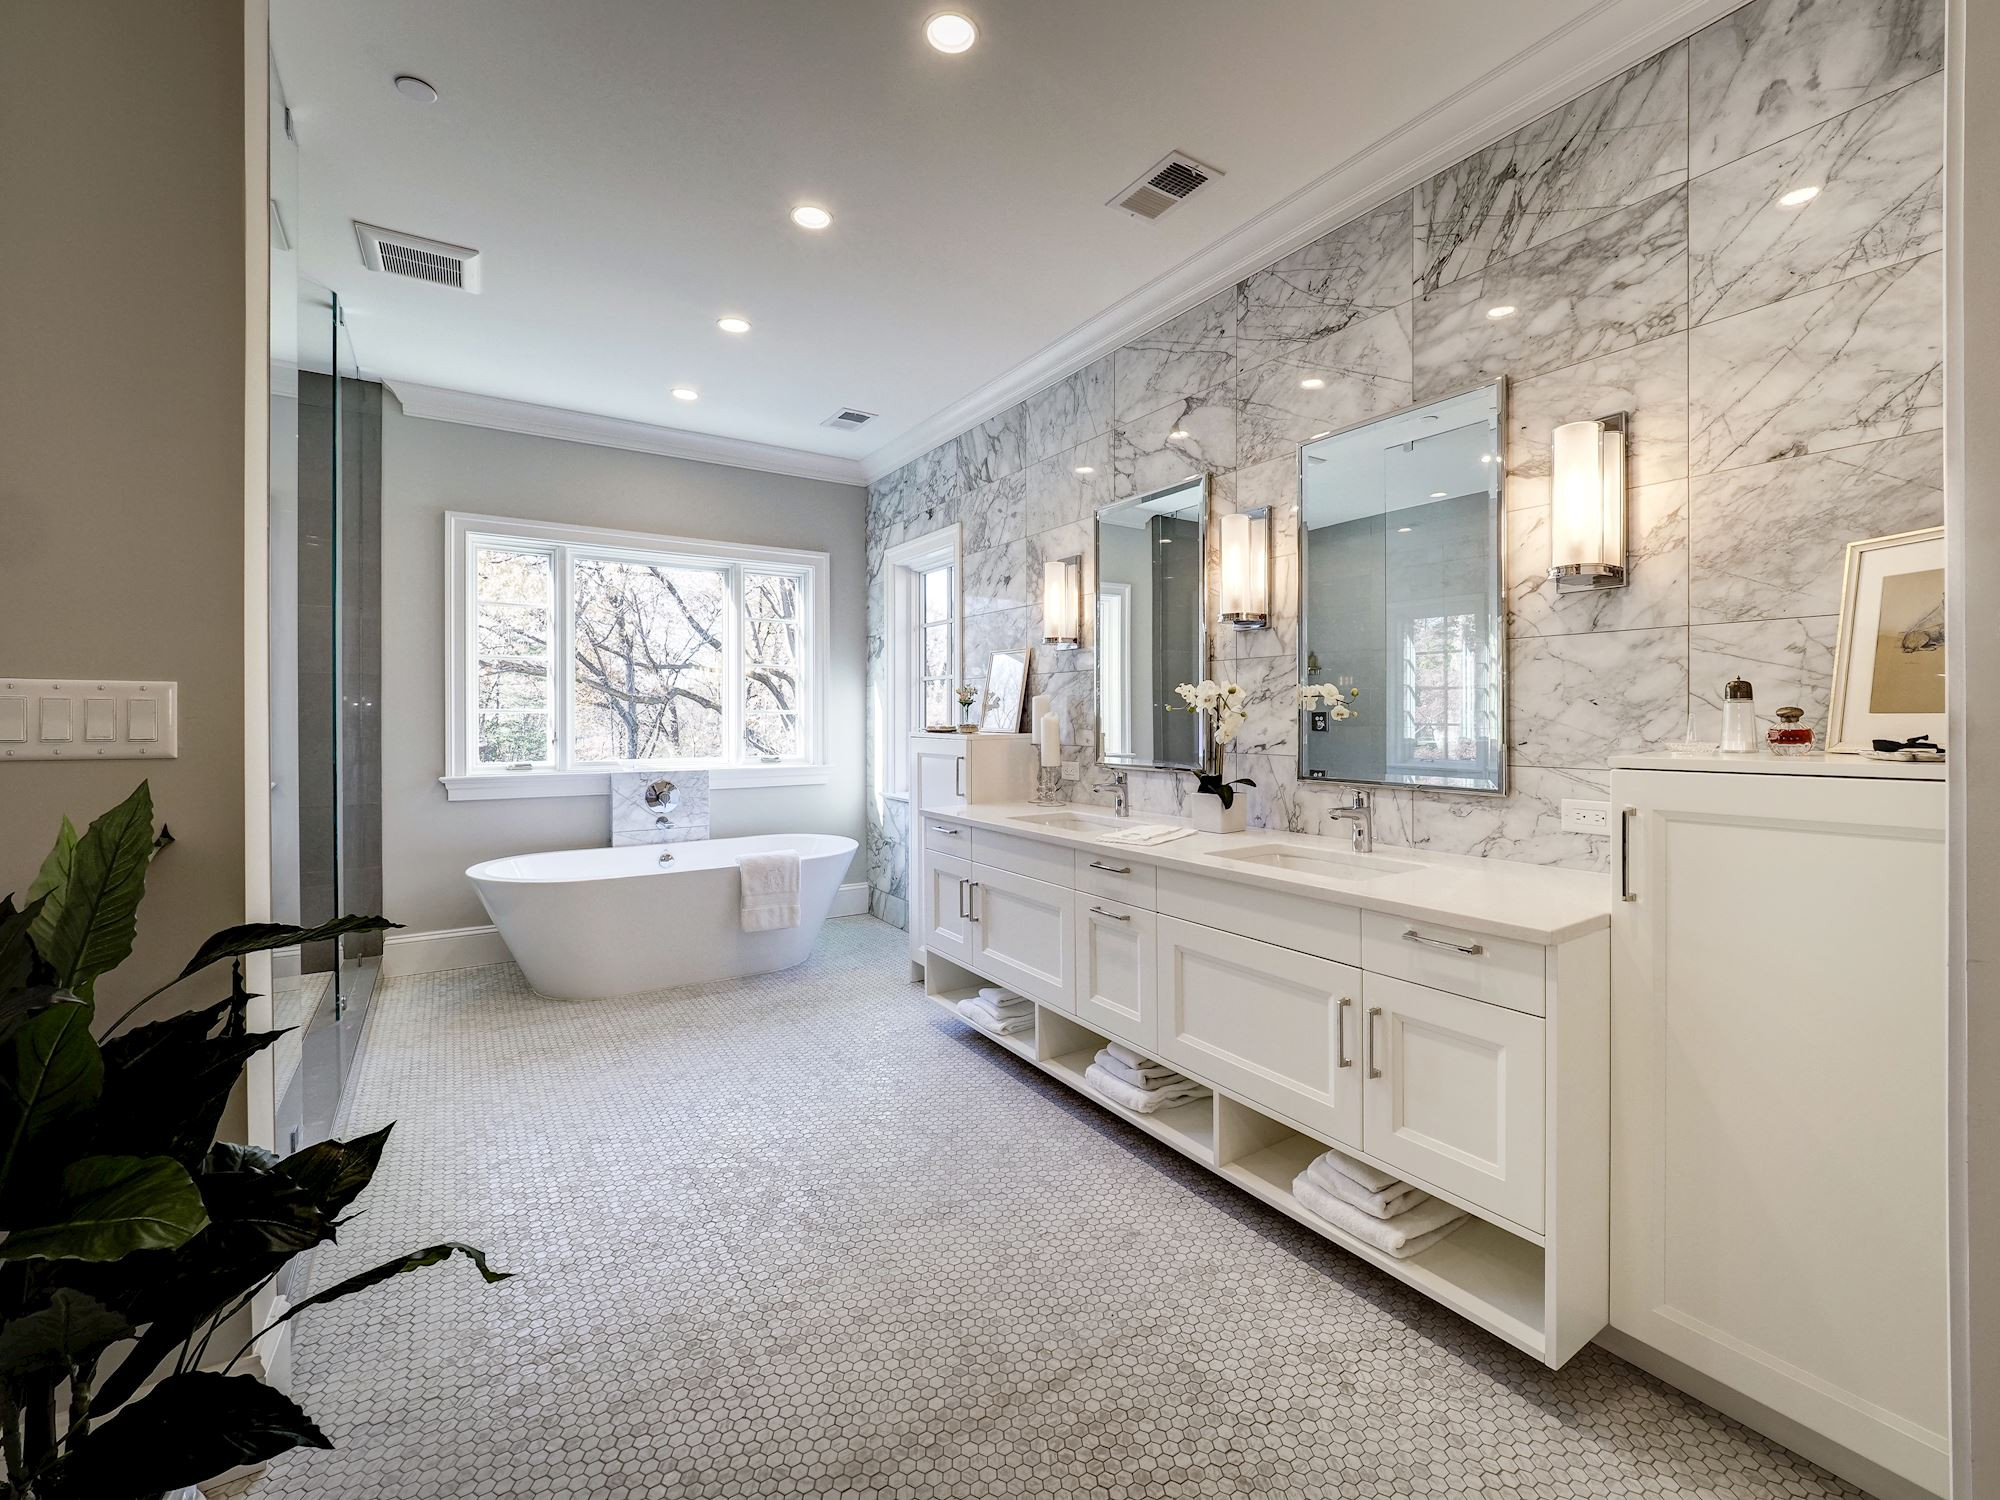 75 Beautiful Bathroom With White Cabinets Pictures Ideas December 2020 Houzz